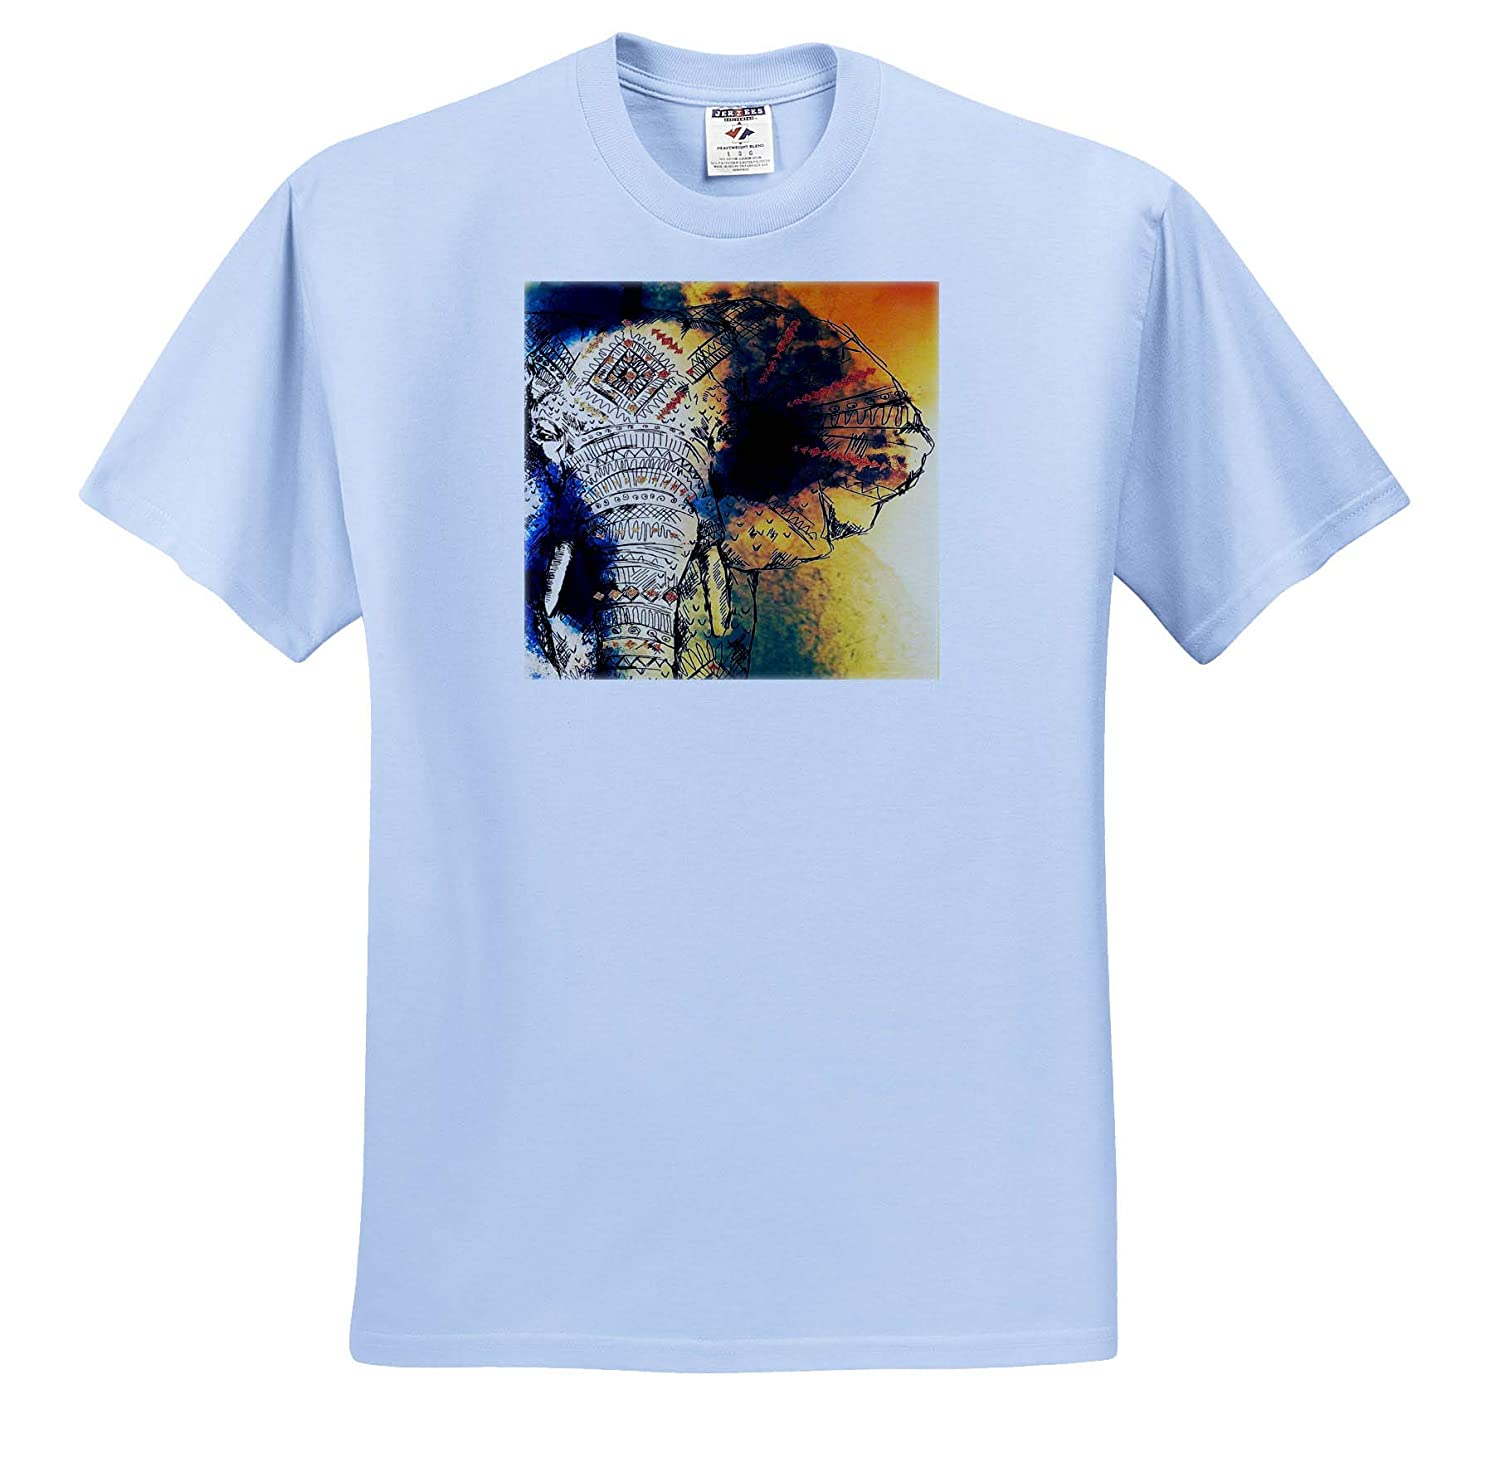 3dRose Lens Art by Florene Watercolor Art T-Shirts Image of Beautiful Colorful Watercolor of an Elephant